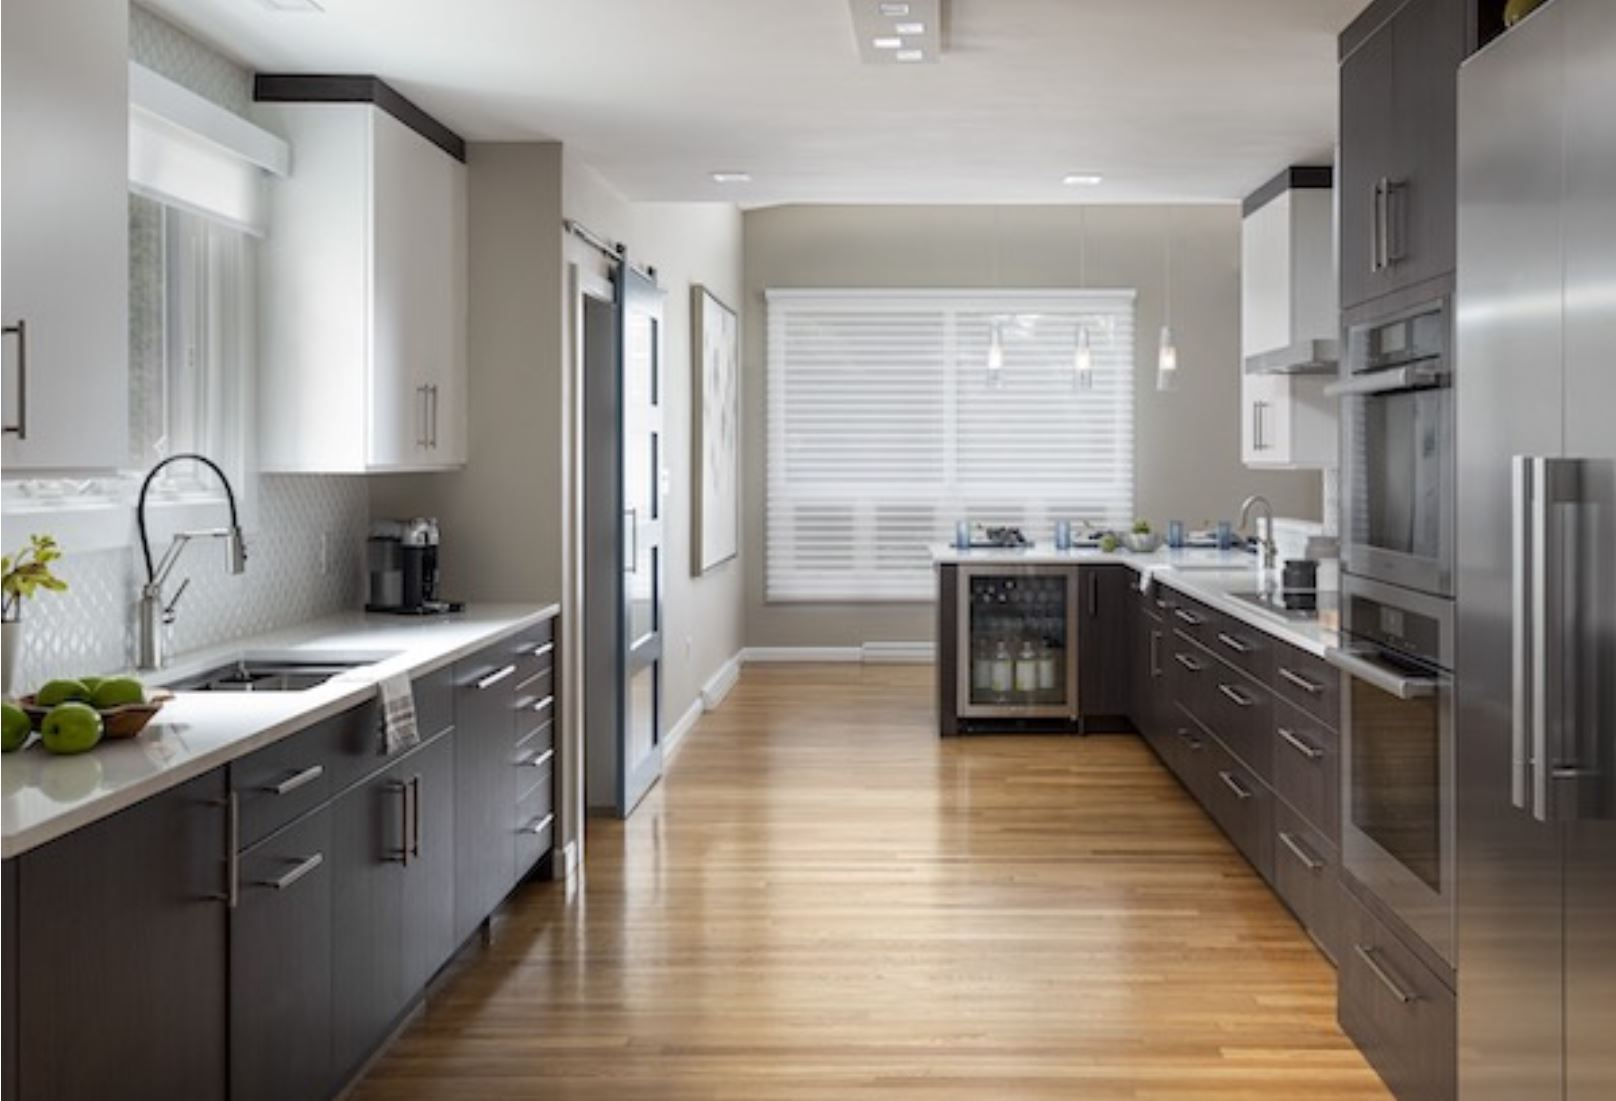 Realtor Magazine 2021 03 15 Ten Kitchen Changes sought out by buyers in 2021 since the begining of the plandemic after going through the COVID-19 Coronavirus pandemic Hoey Team exp Realty 07